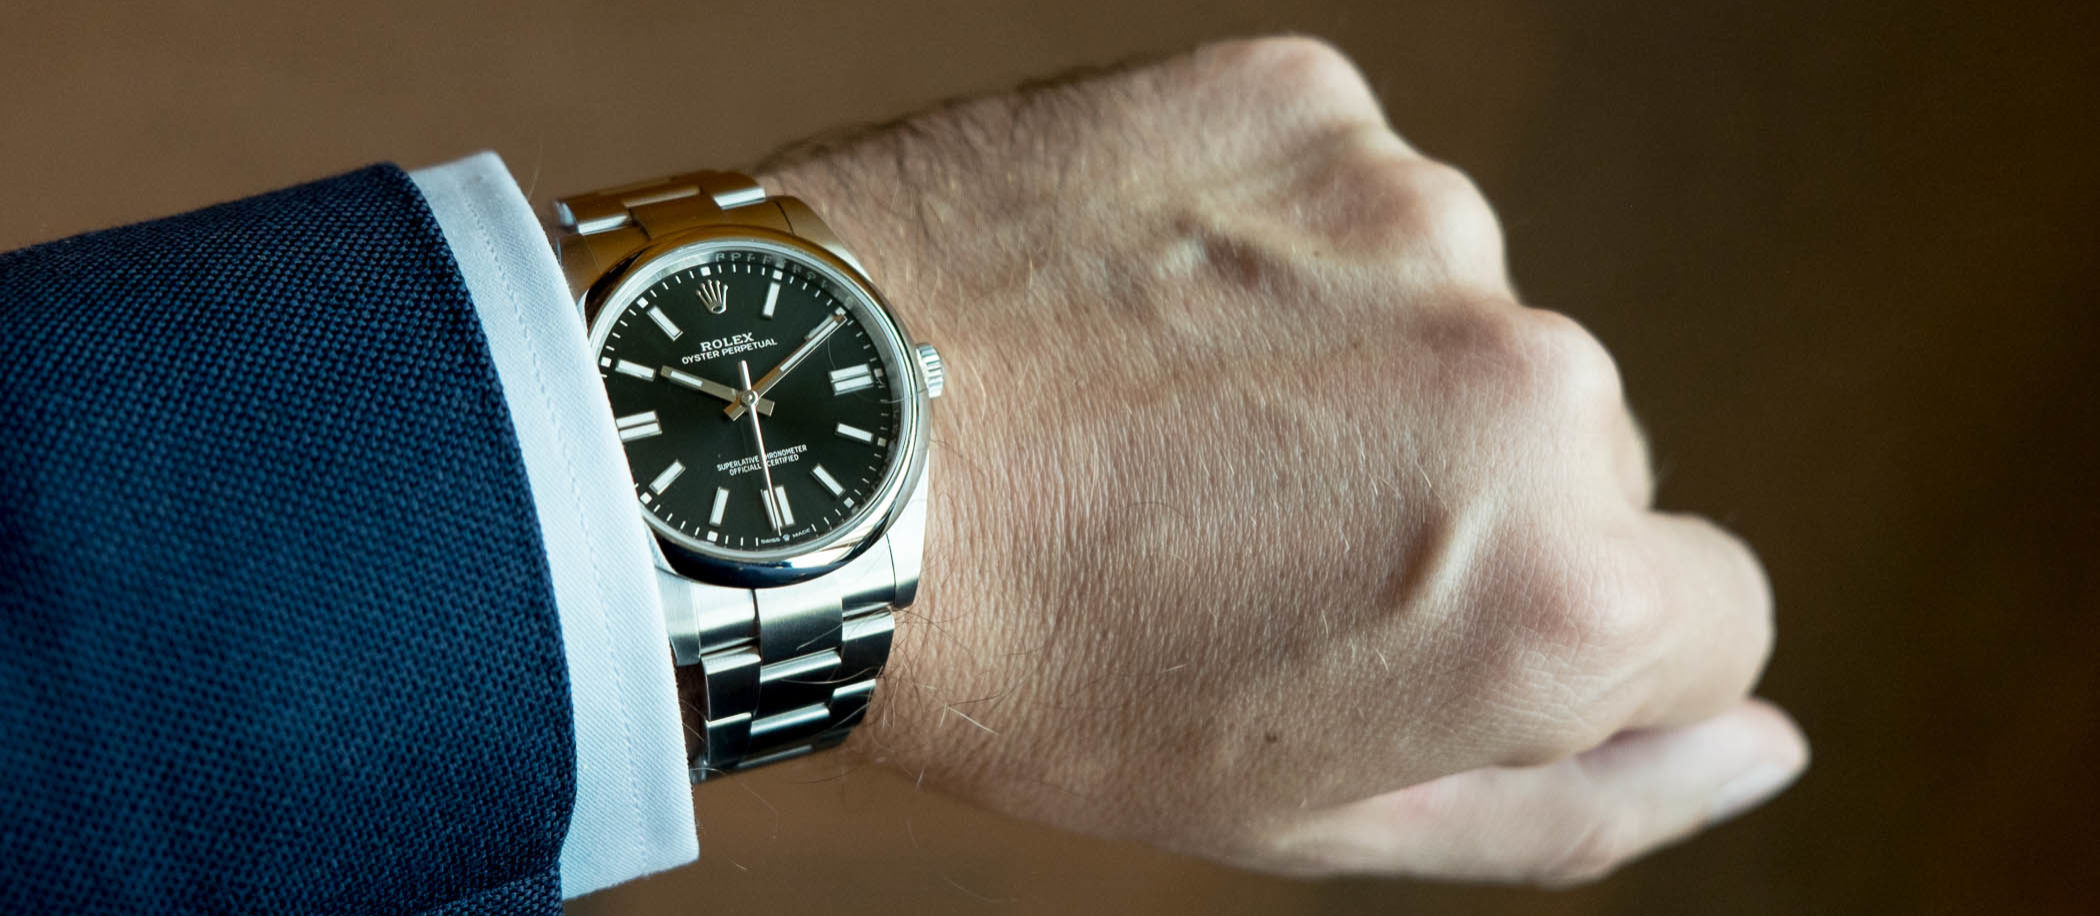 Rolex Oyster Perpetual 41 mm - Ref. 124300